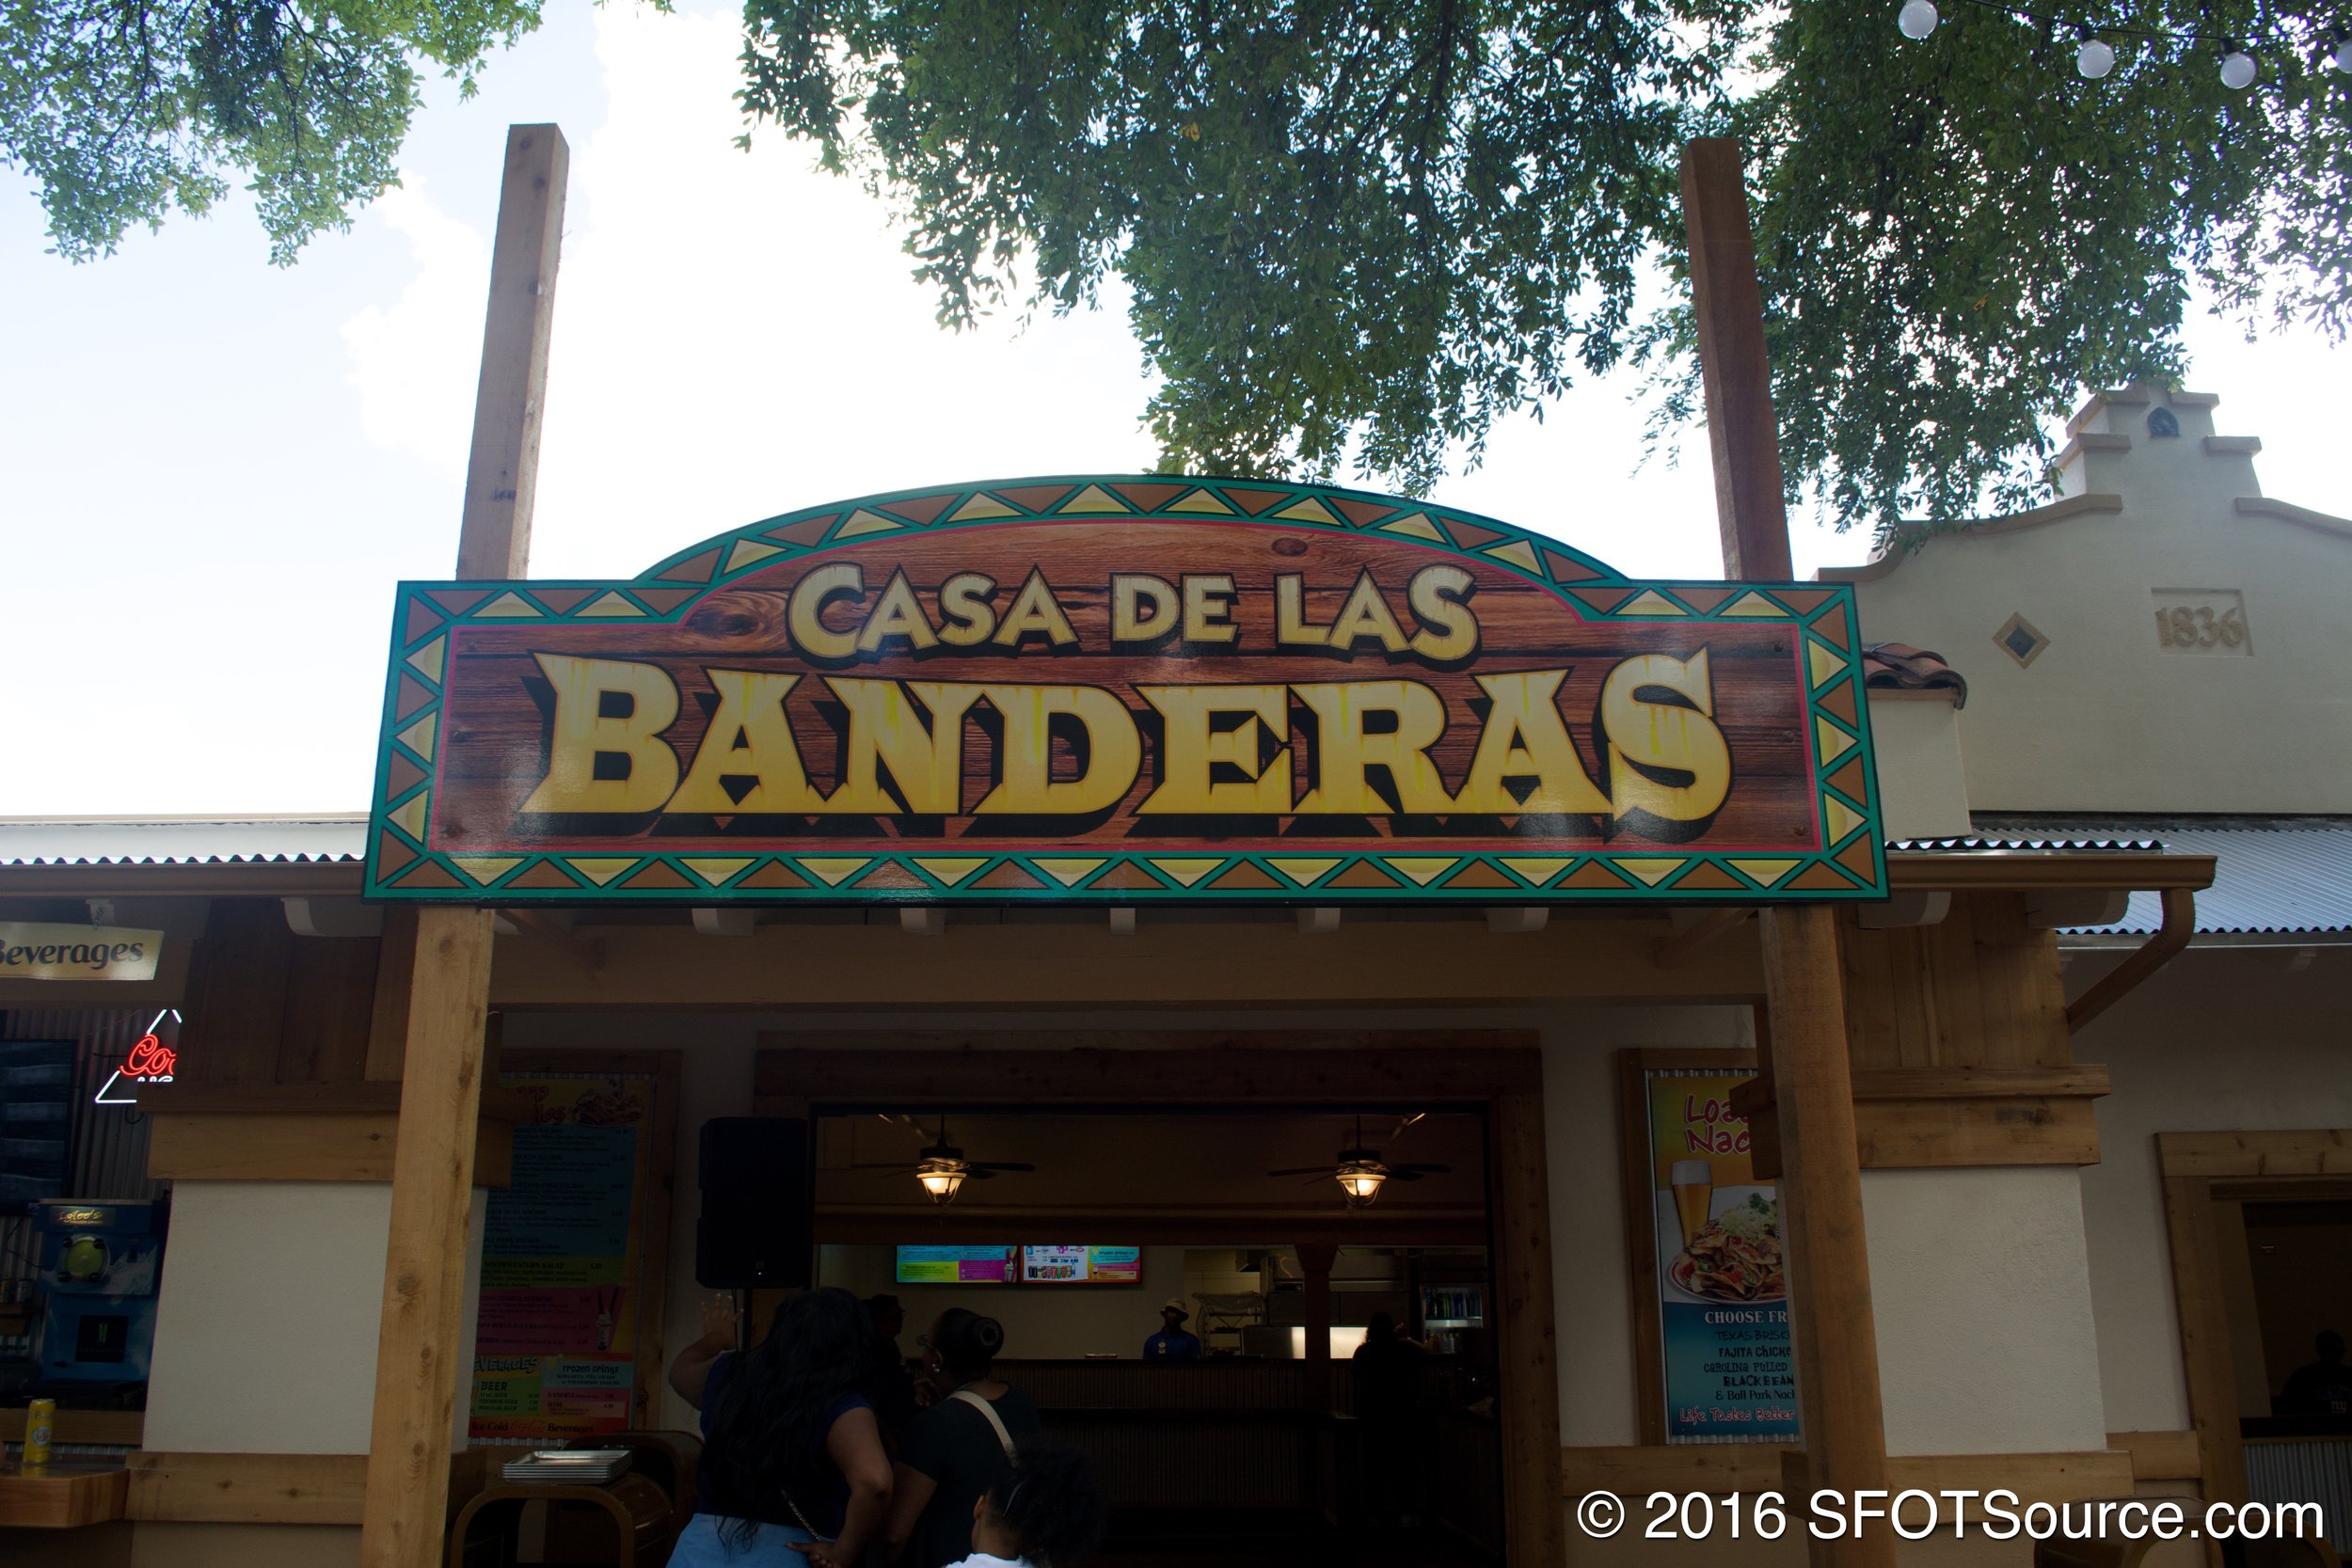 Casa de las Banderas is located in the park's Mexico section.